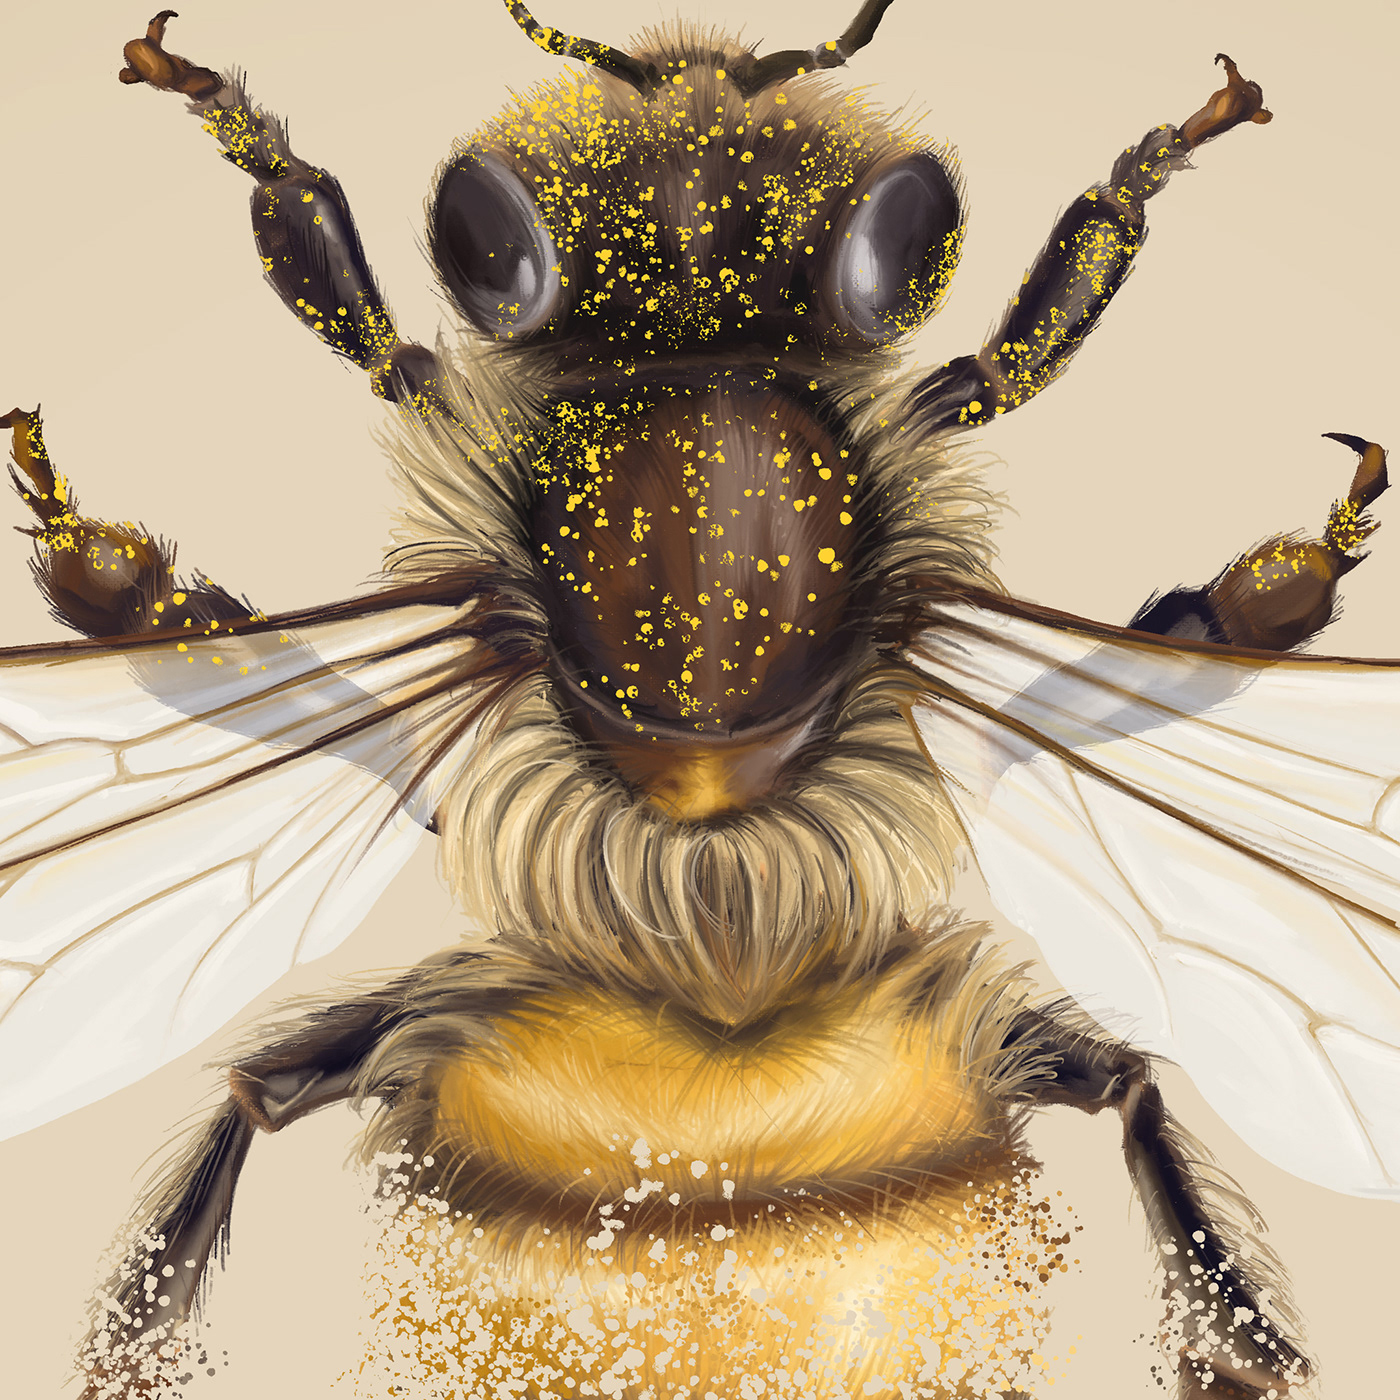 bees Disappear ecosystems ILLUSTRATION  photoshop Pollen science stile